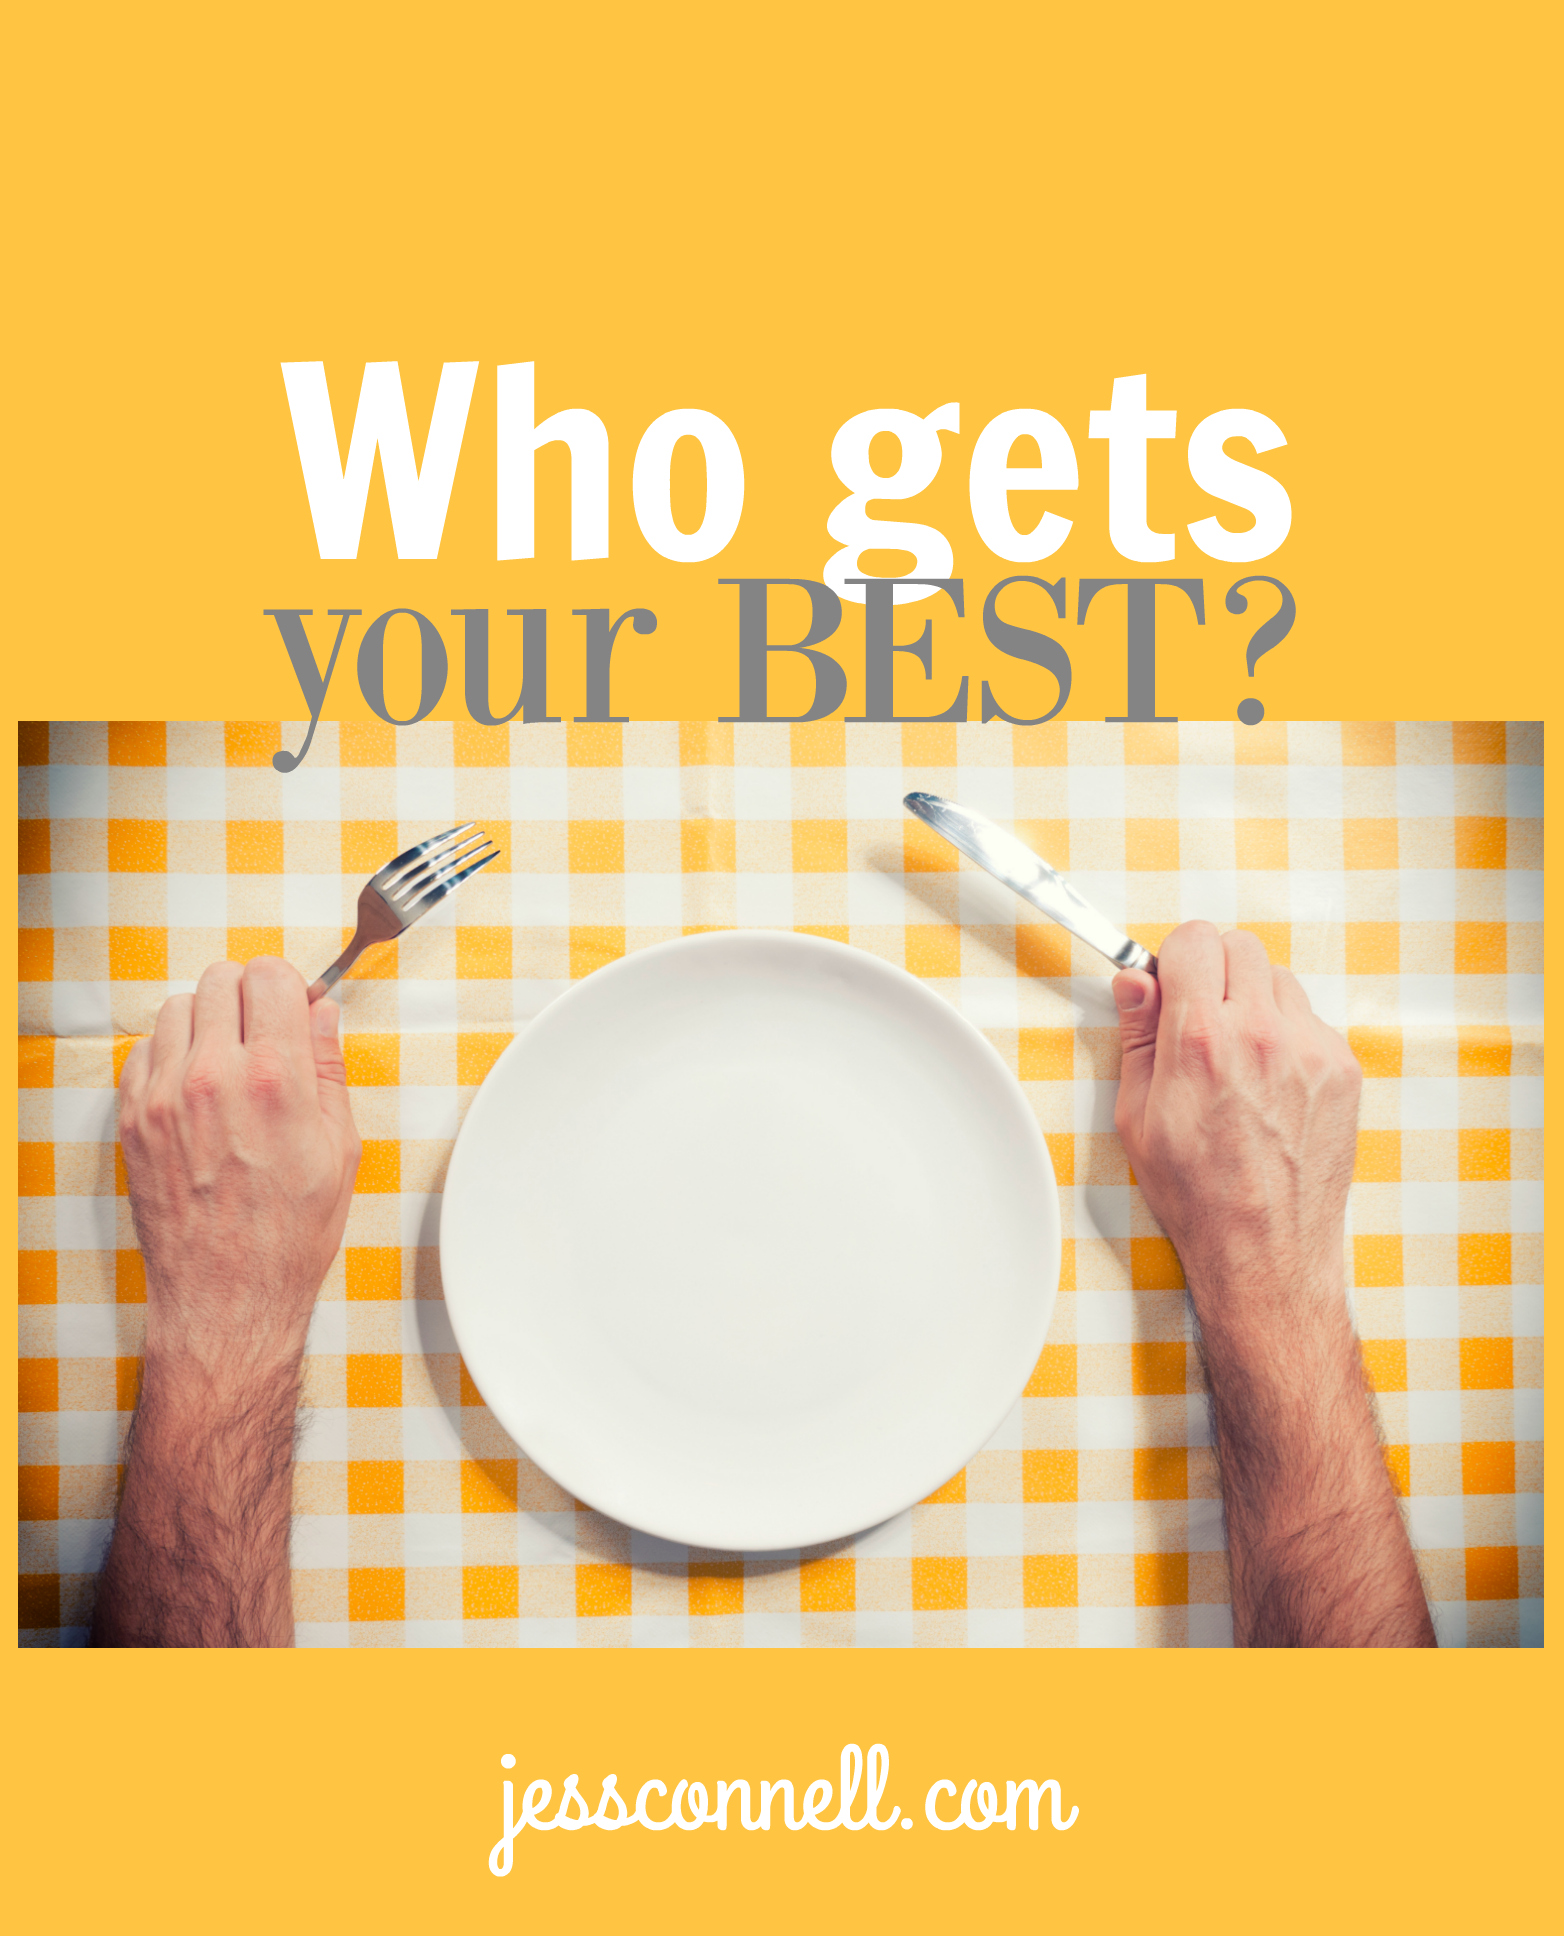 Who Gets Your BEST? // jessconnell.com